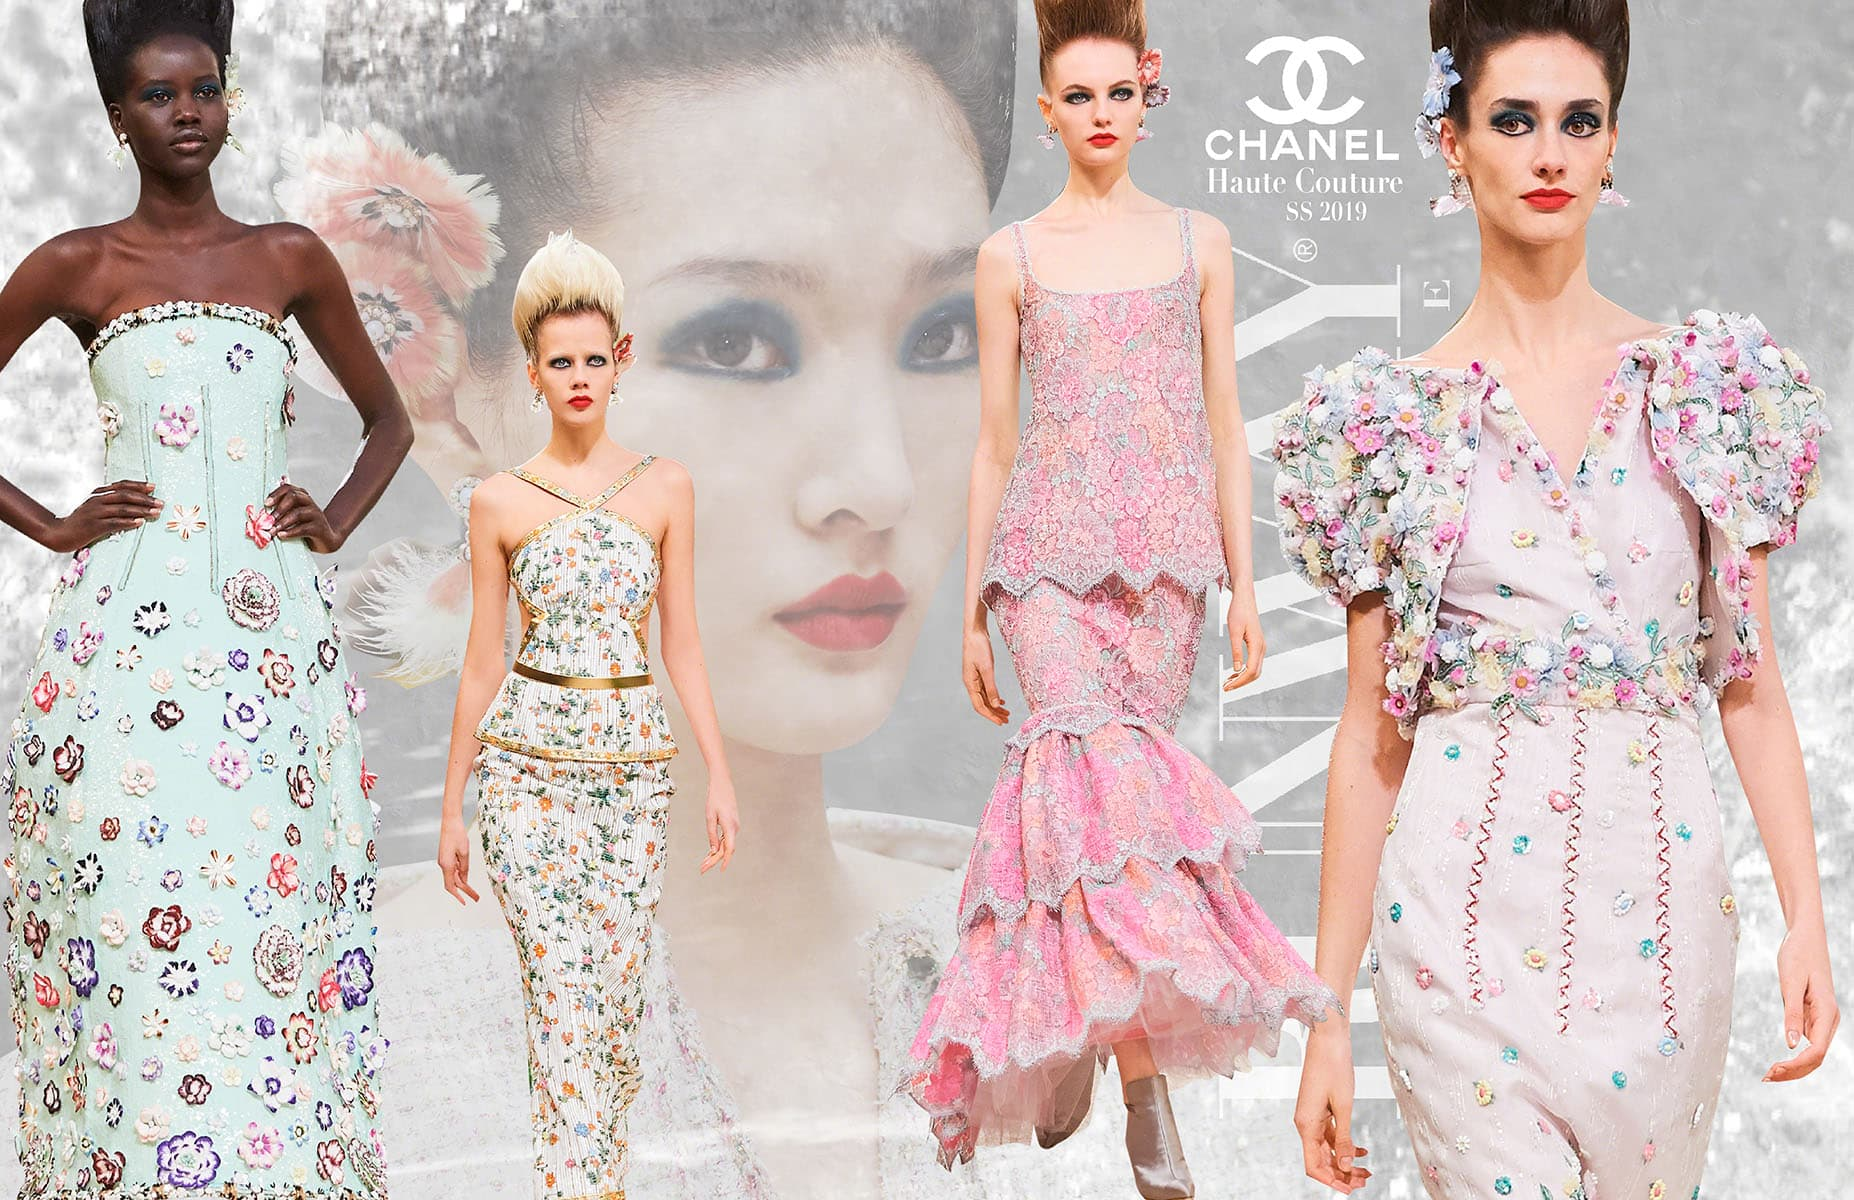 Chanel Haute Couture Spring-Summer 2019 Last Collection of Karl Lagerfeld